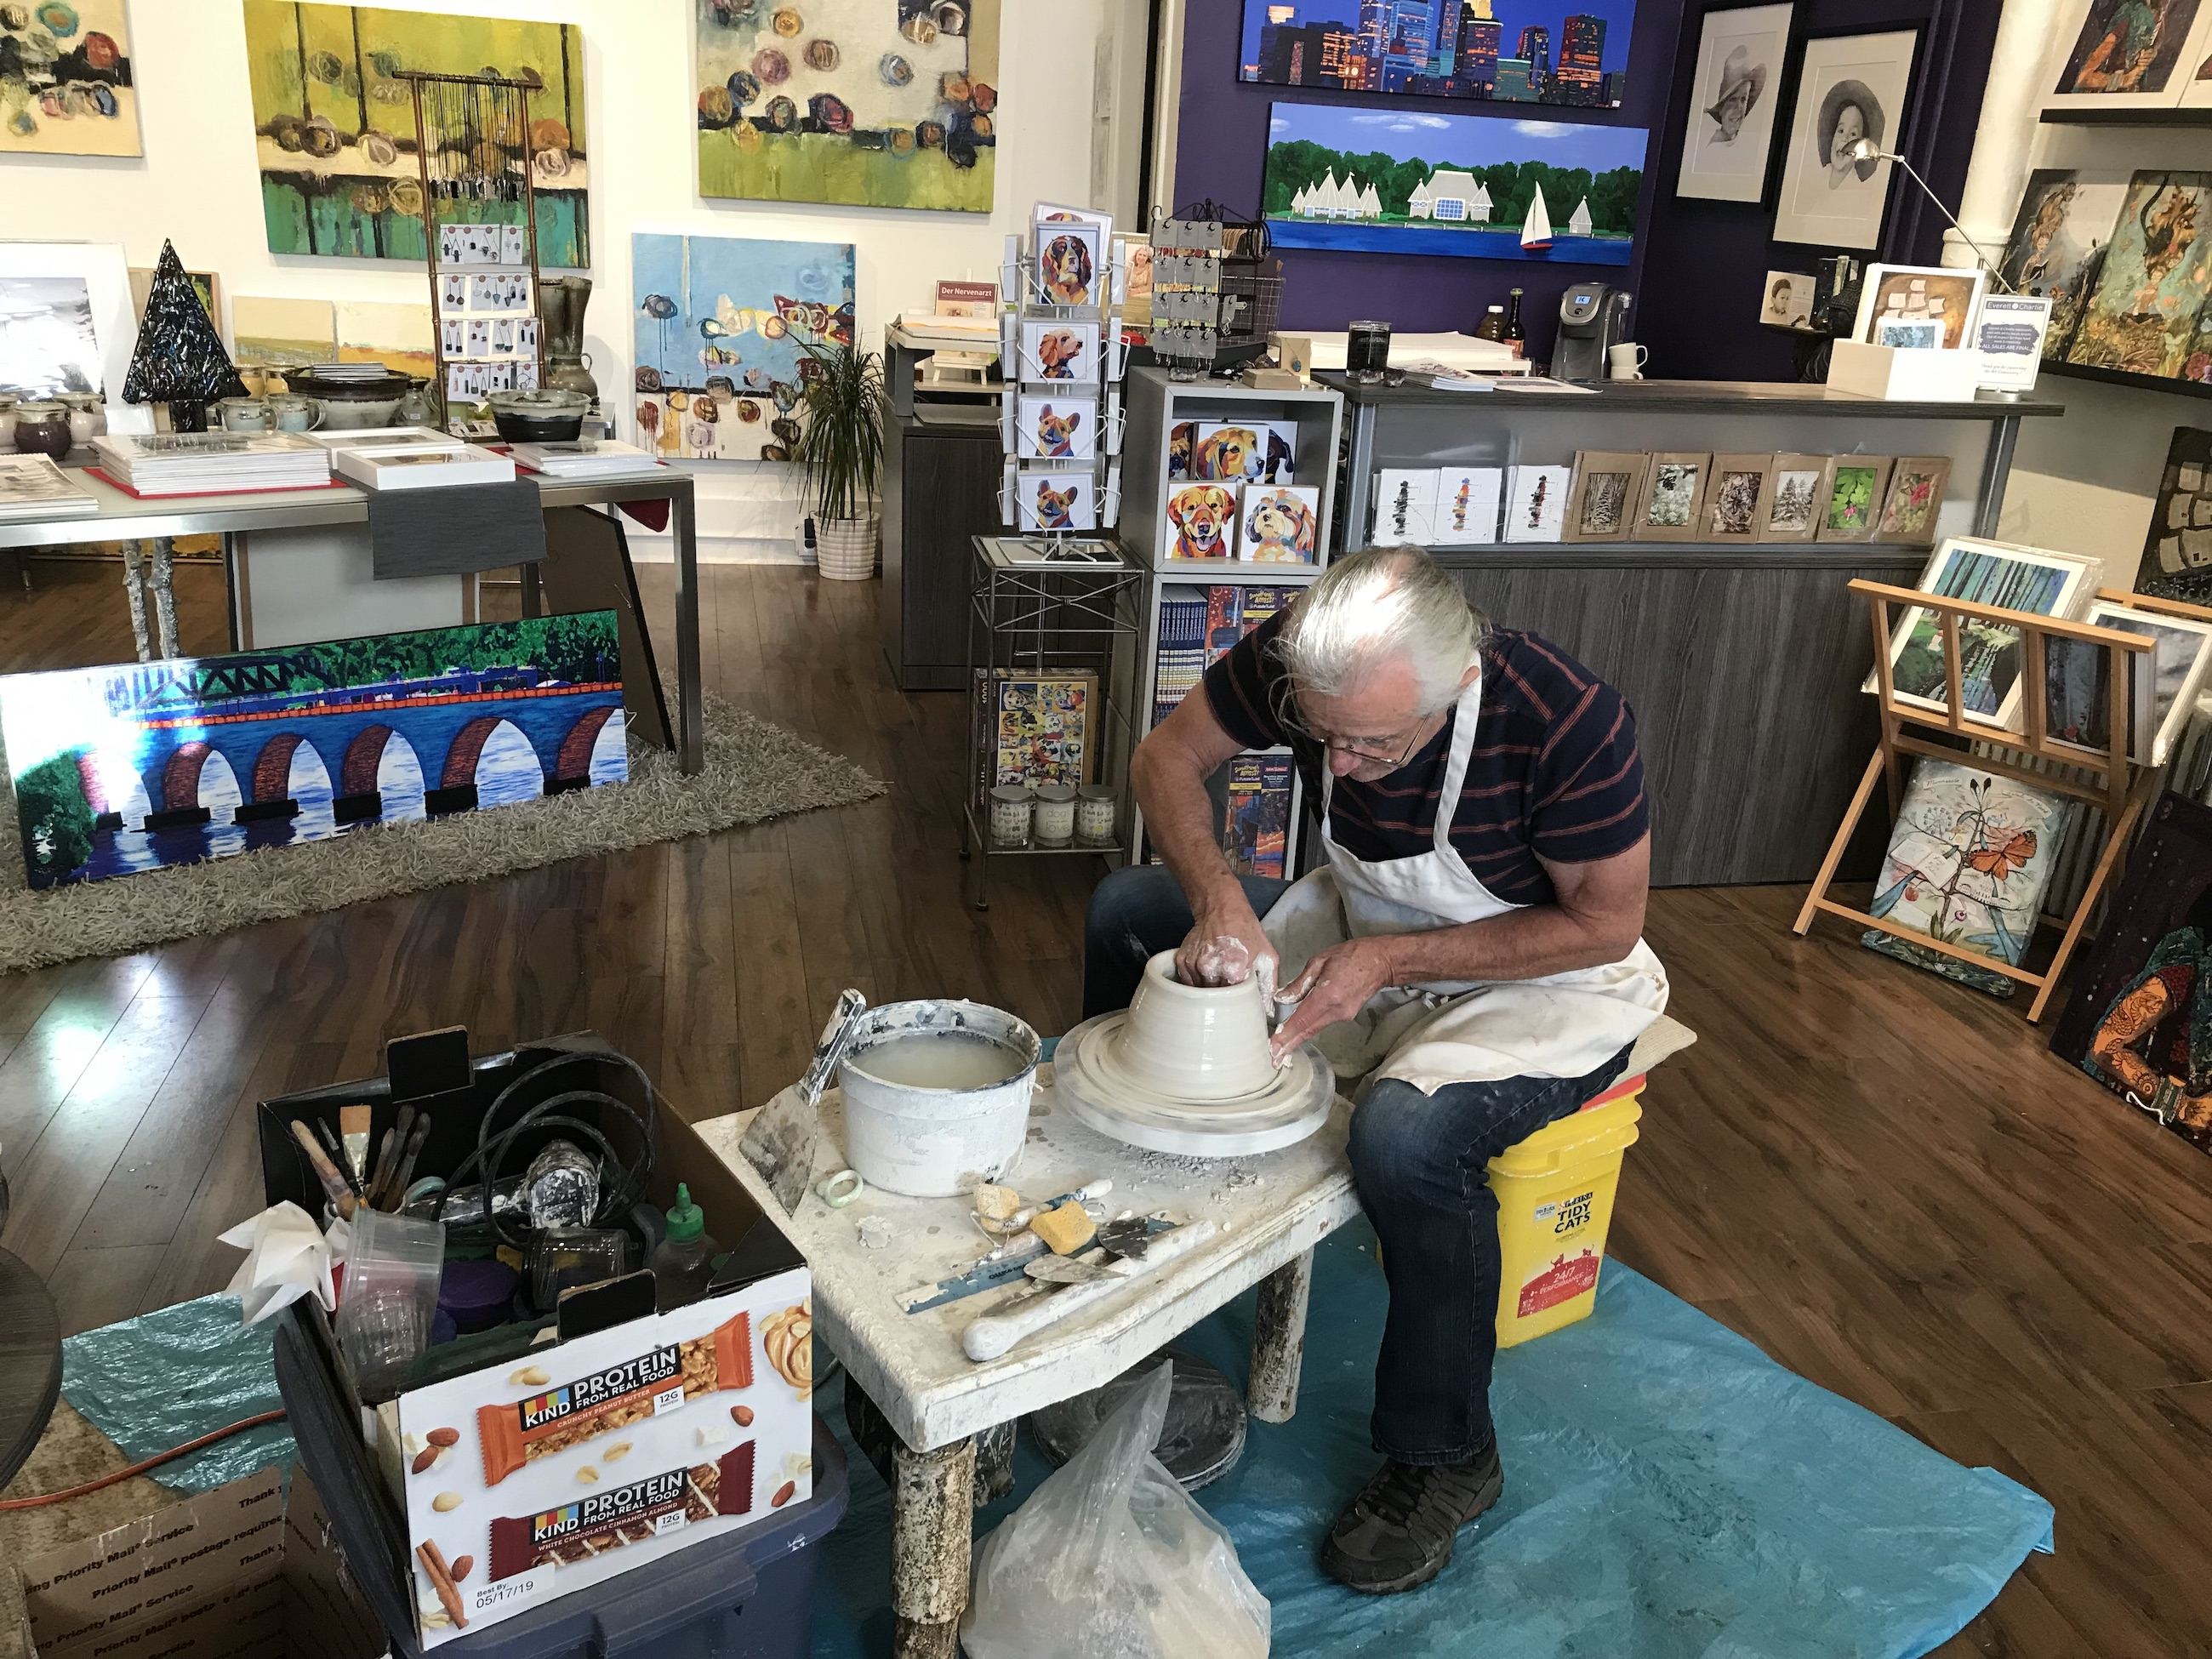 Bill Kaufmann of Linden Hills Pottery mans the wheel at an art show at the Everett & Charlie Gallery at 2720 W. 43rd St. Submitted image.